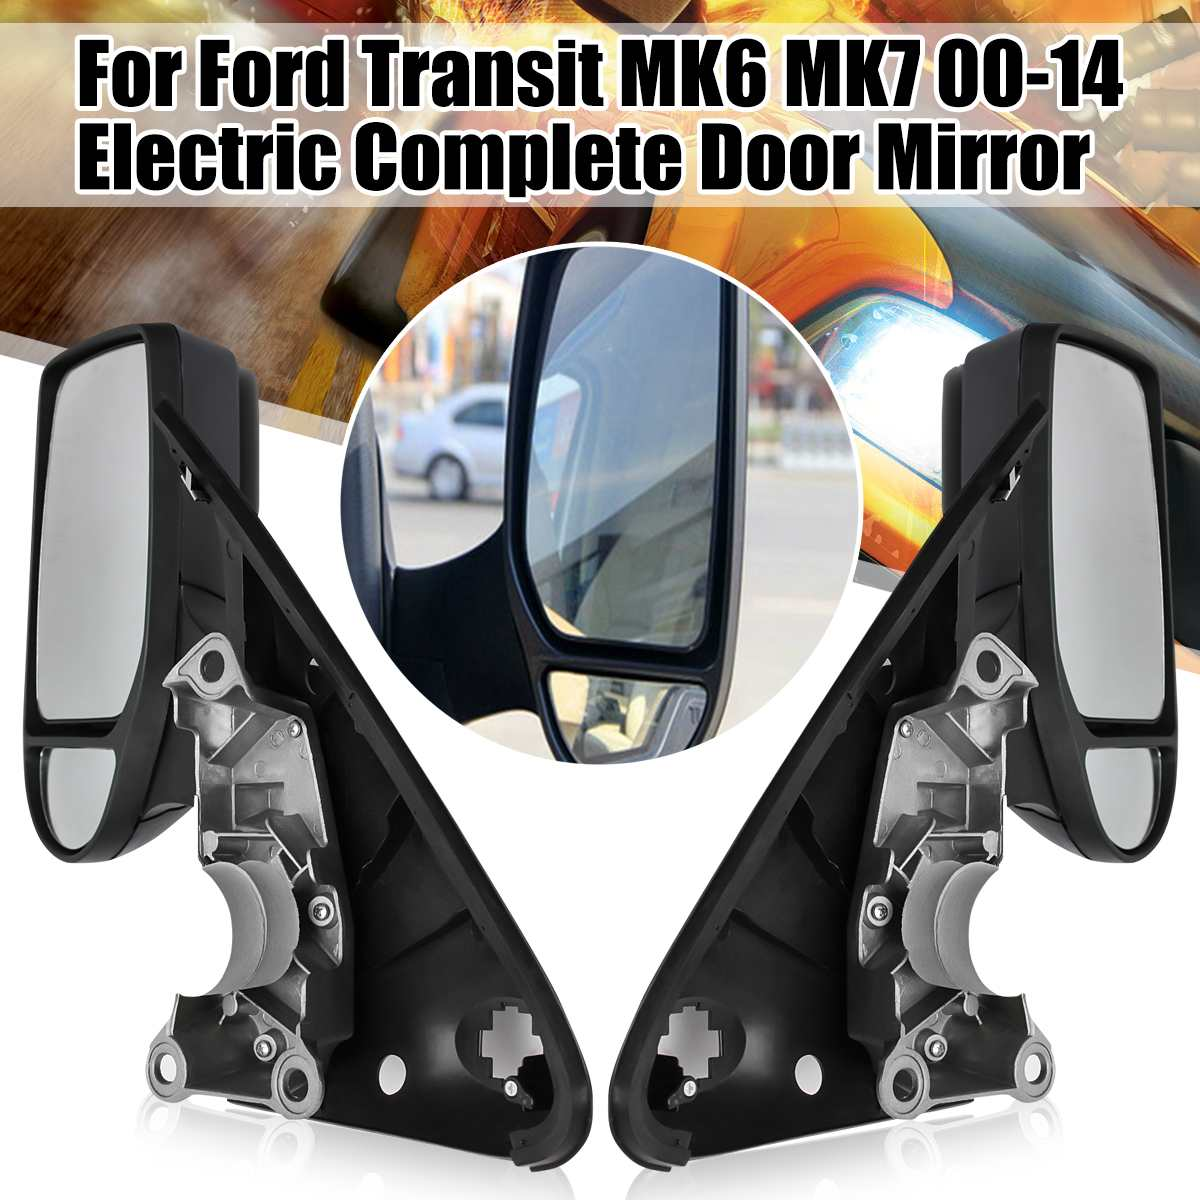 COMPLETE DOOR WING MIRROR MANUAL RIGHT DRIVER SIDE FOR FORD TRANSIT MK6 MK7